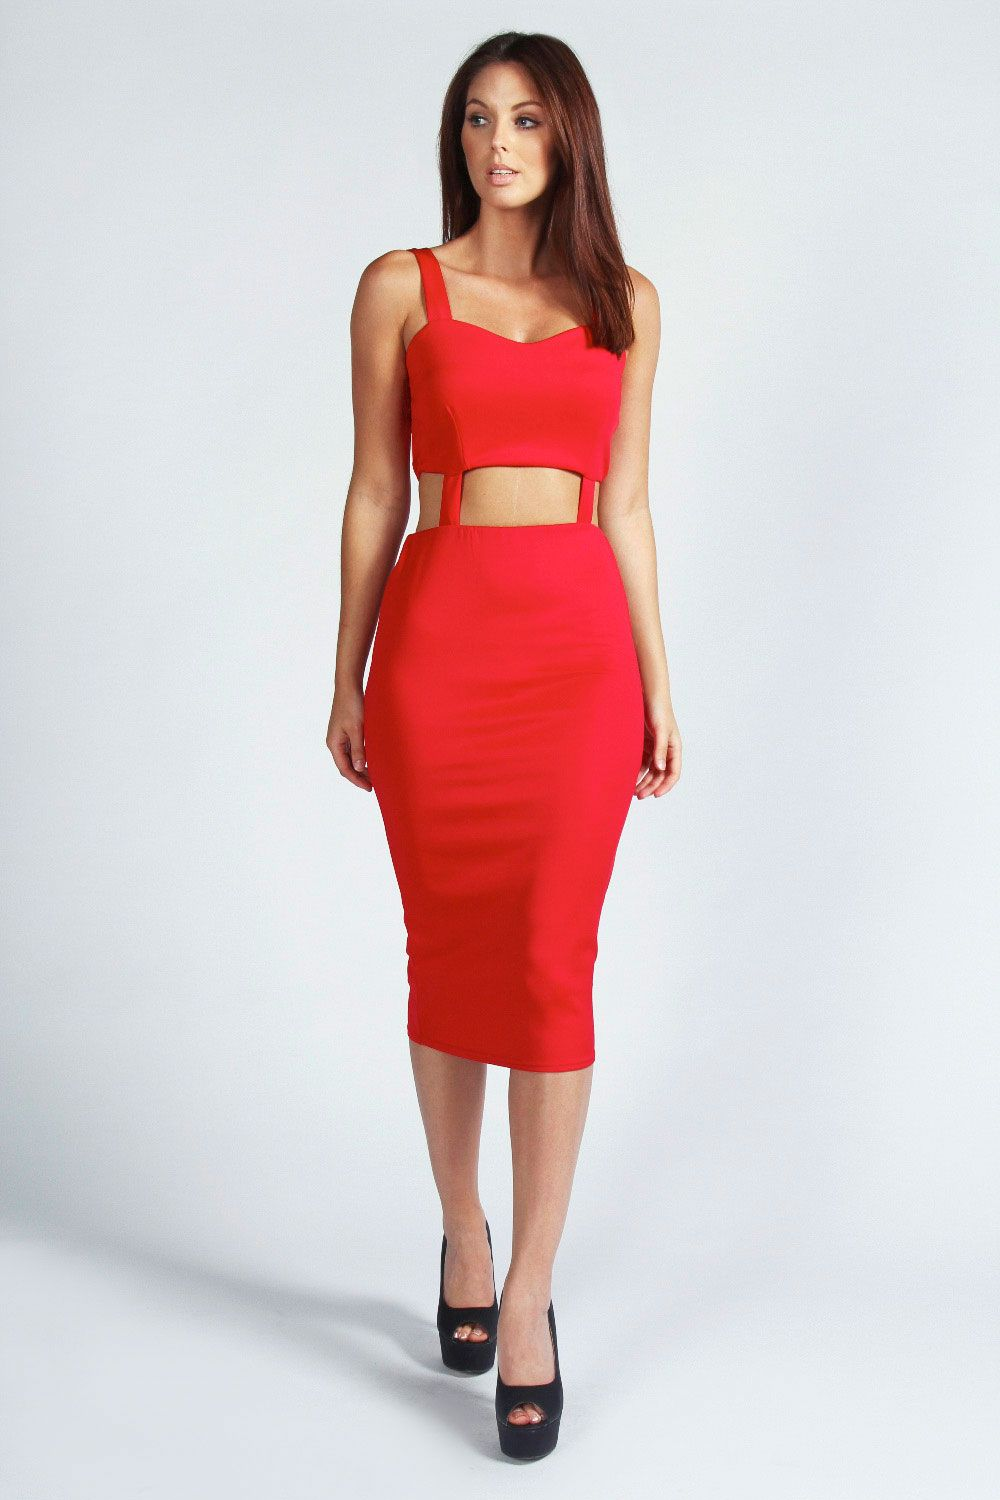 Beginners from red bodycon dress outfit ideas